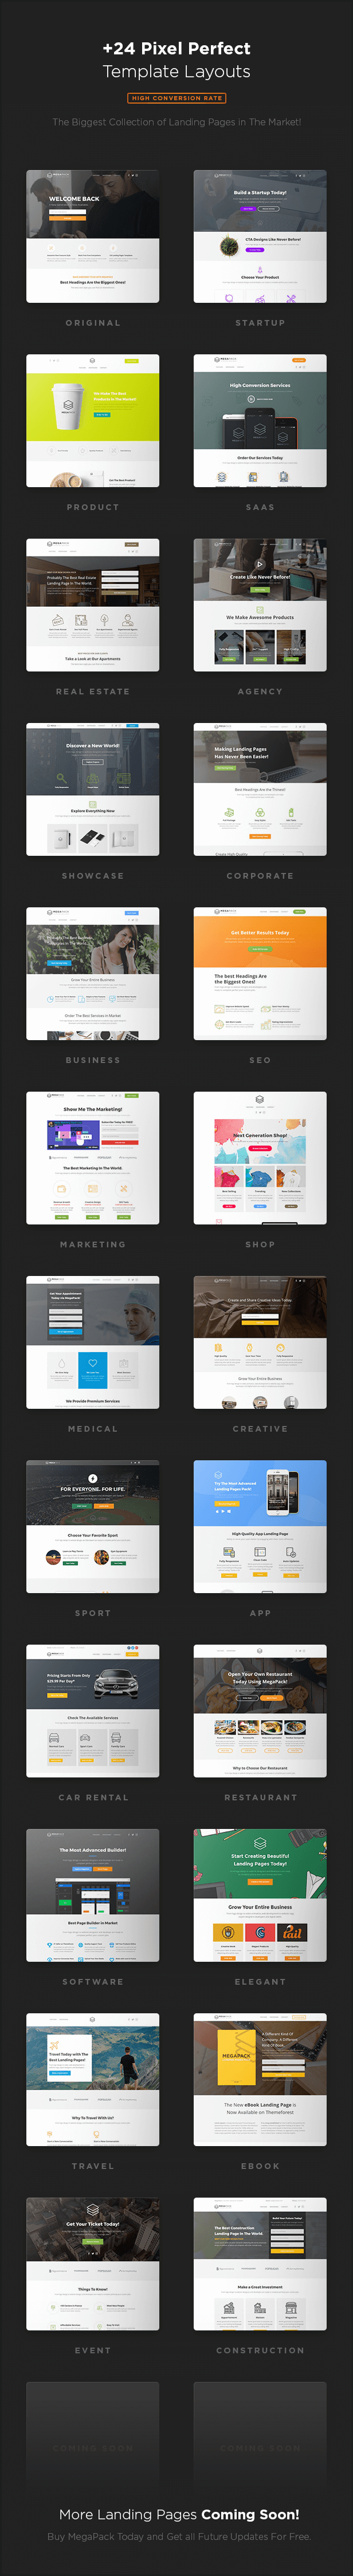 MEGAPACK – Premium Marketing Landing Page Templates Pack With ...